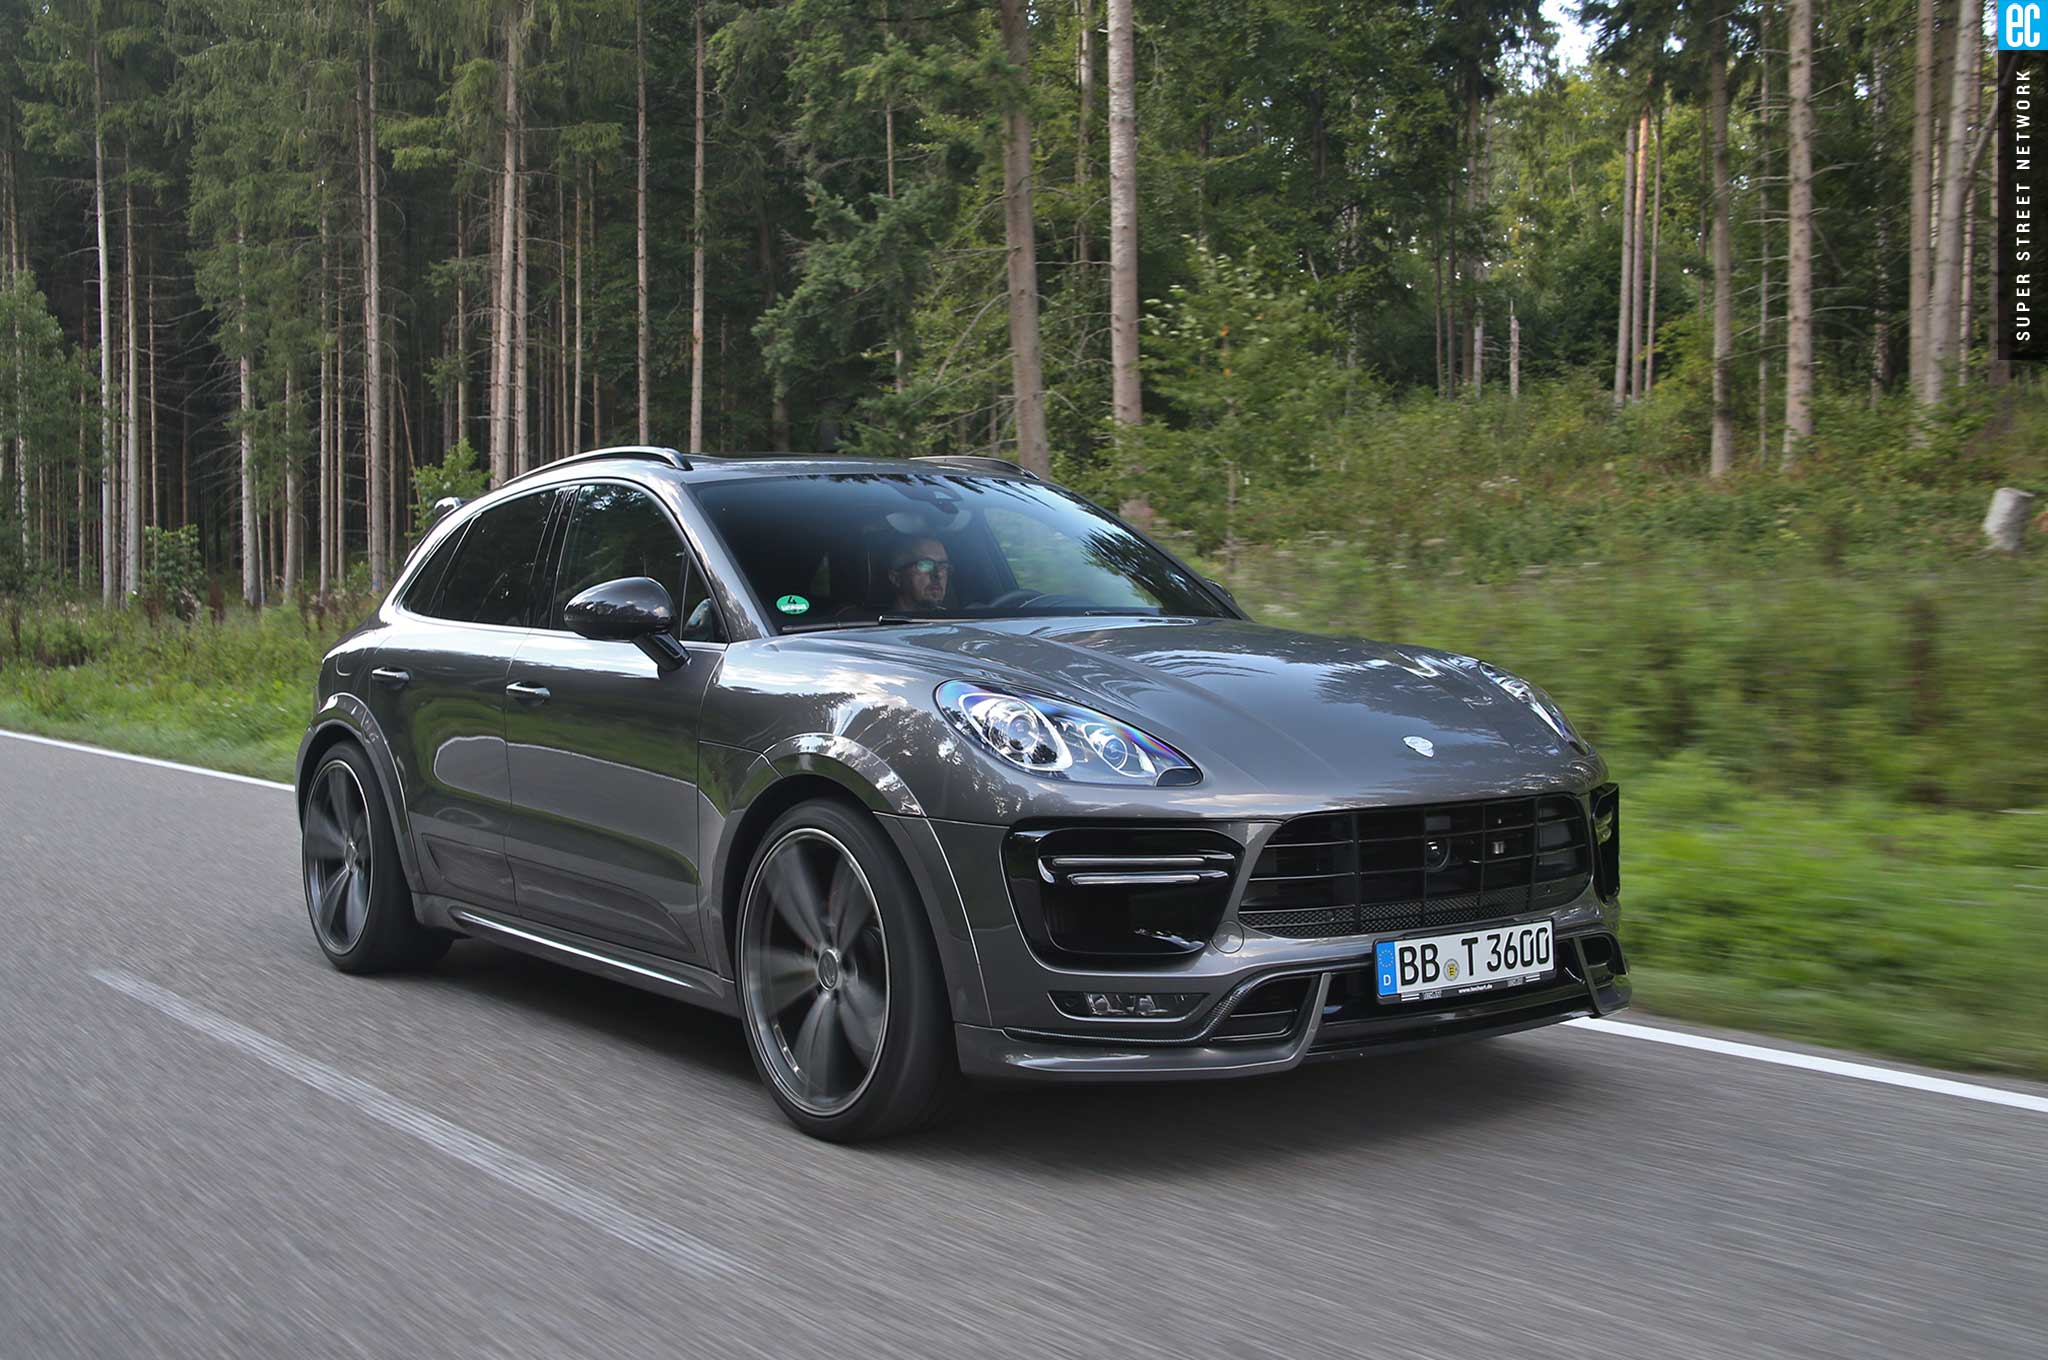 techart heats up the 2015 porsche macan turbo | automobile magazine